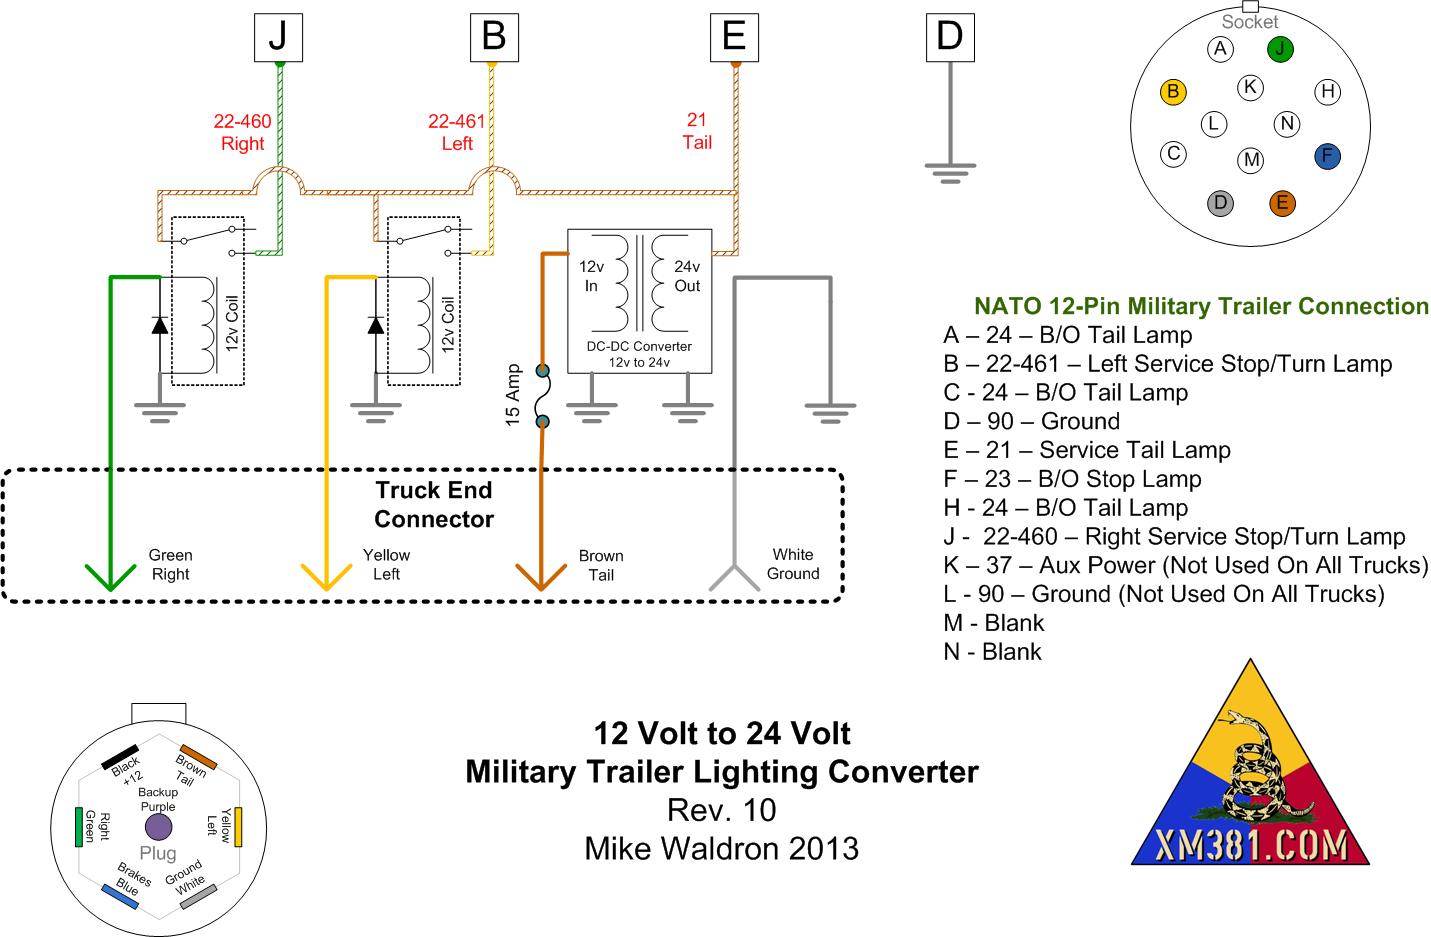 Nato Trailer Wiring Diagram - Wiring Diagrams Second on plug fuse, spark plugs diagram, plug connector, plug wire, plug safety, 7 rv plug diagram, plug switch, plug lighting diagram, 6.2 glow plug controller diagram, network diagram, 12 volt latching relay diagram, trailer light plug diagram, chevy 305 firing order diagram, plug socket diagram, plug valve, fuel line diagram, wire light switch from outlet diagram, plug circuit breaker, power diagram, electrical plug diagram,